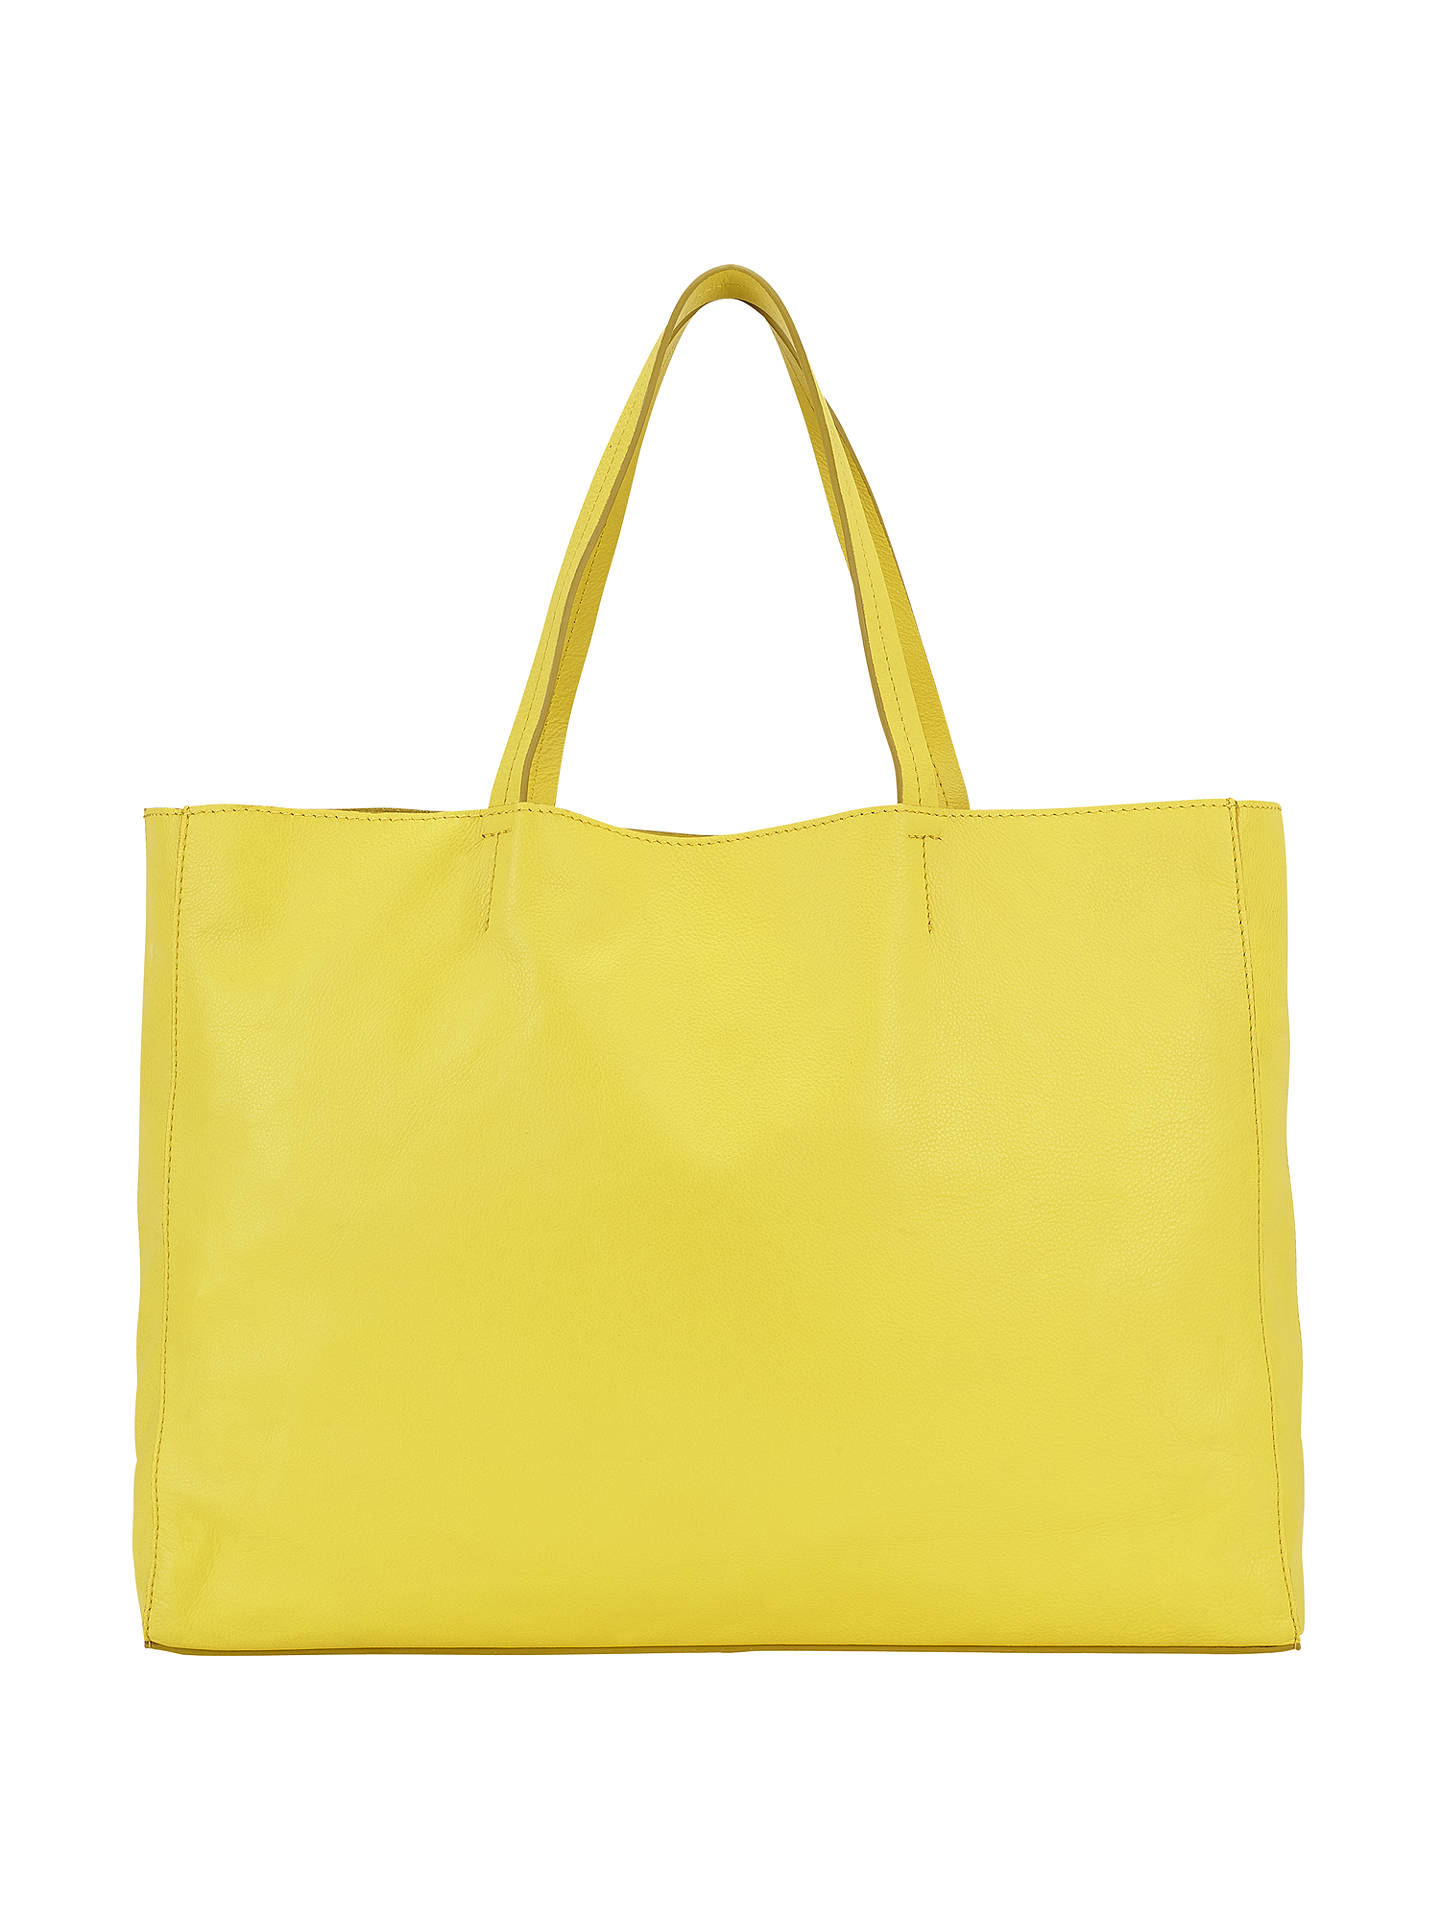 bd0434617f4 Buy Collection WEEKEND by John Lewis Morgan Raw Edge Leather Tote Bag,  Yellow Online at ...